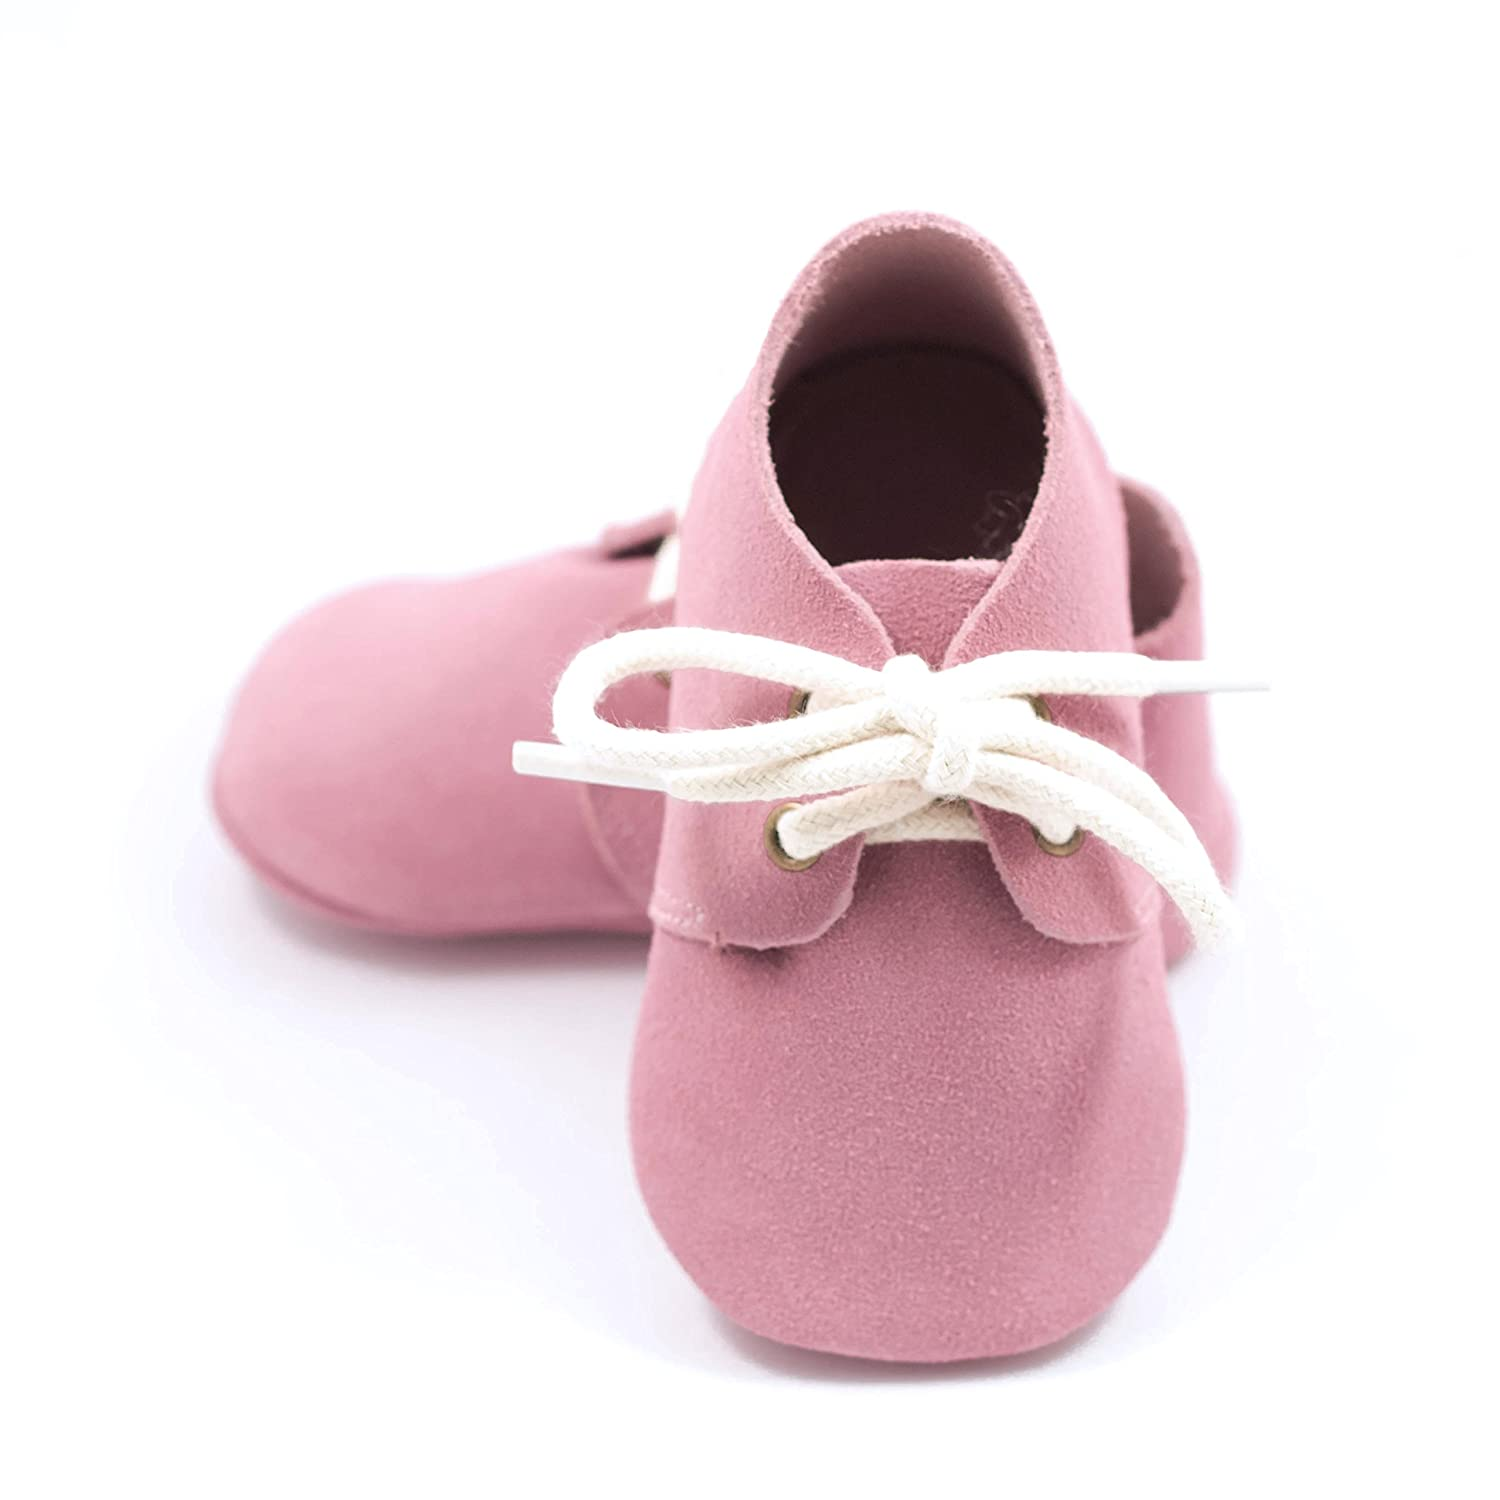 Soft Sole Leather Moccasins Babies Toddlers Elk Kids Oxford boy Girl Baby Shoes